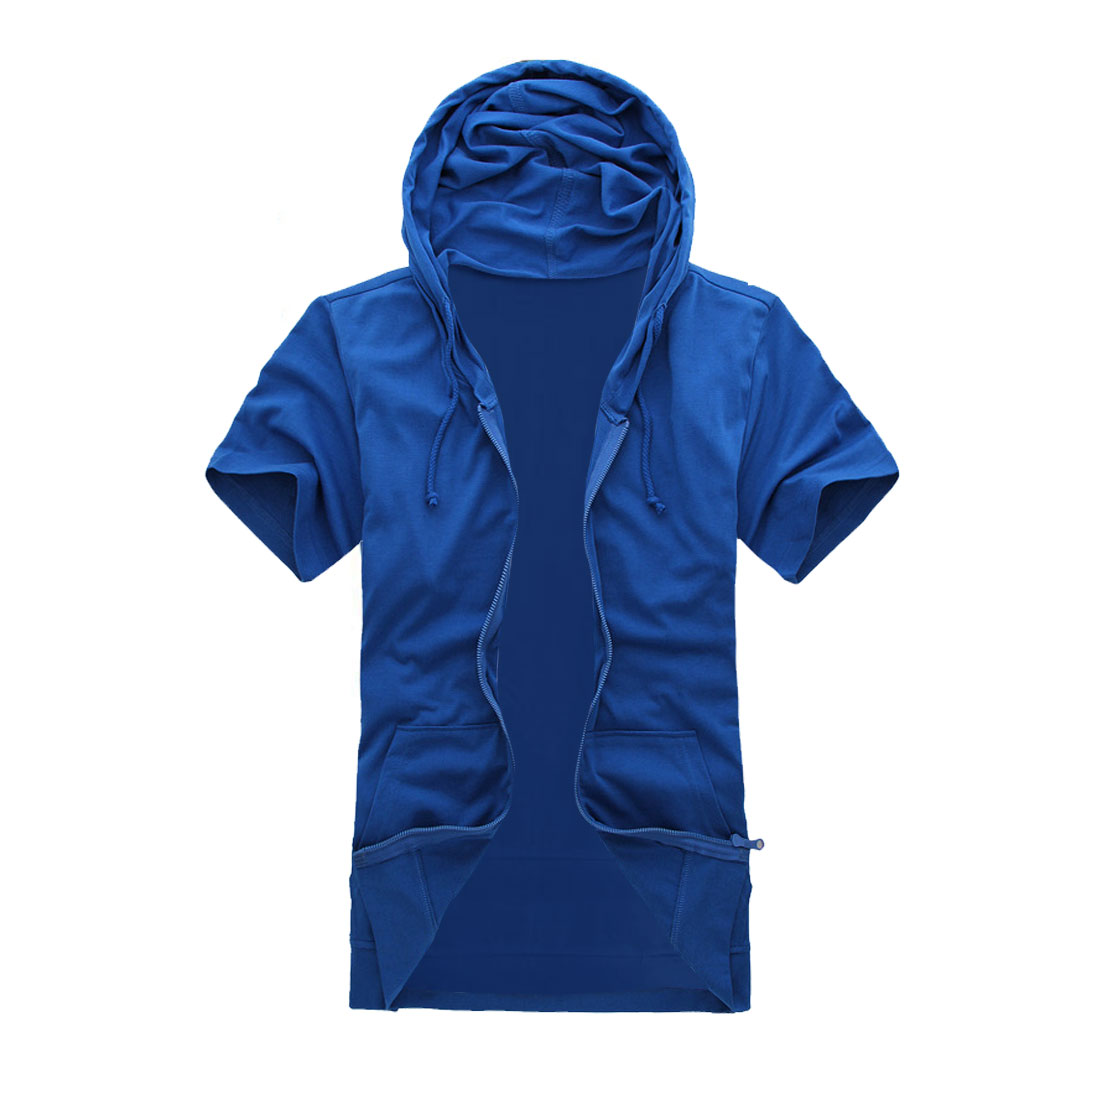 Man Drawstring Hood With Pockets Leisure Stylish Blue Hoody M